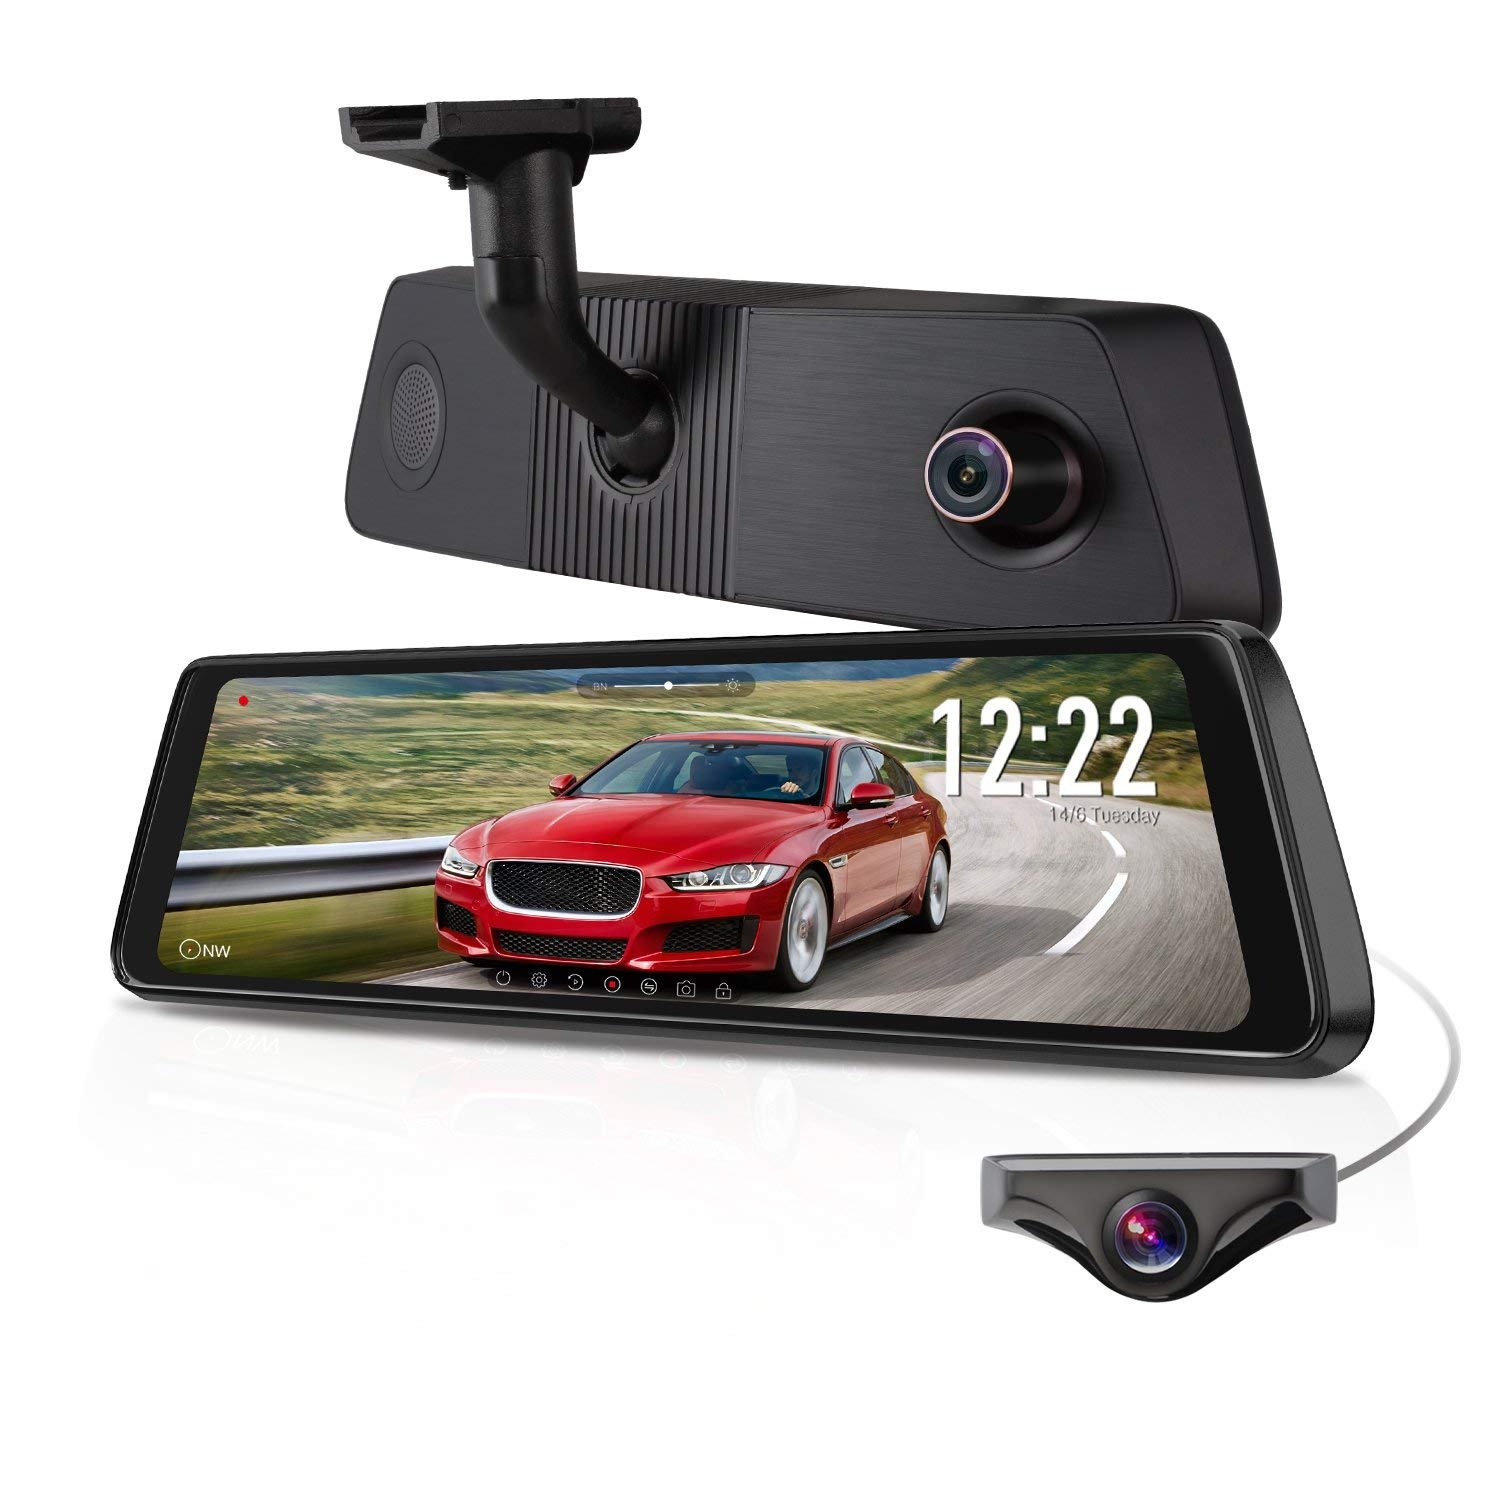 X1PRO Rear View Mirror Dash Cam 9.88'' Full Touch Screen Dual Lens with 1296P Front and 720P Super Night Vision Stream Media Backup Camera kit, WDR,LDWS, GPS Tracking,Auto-Brightness Adjusting by AUTO-VOX